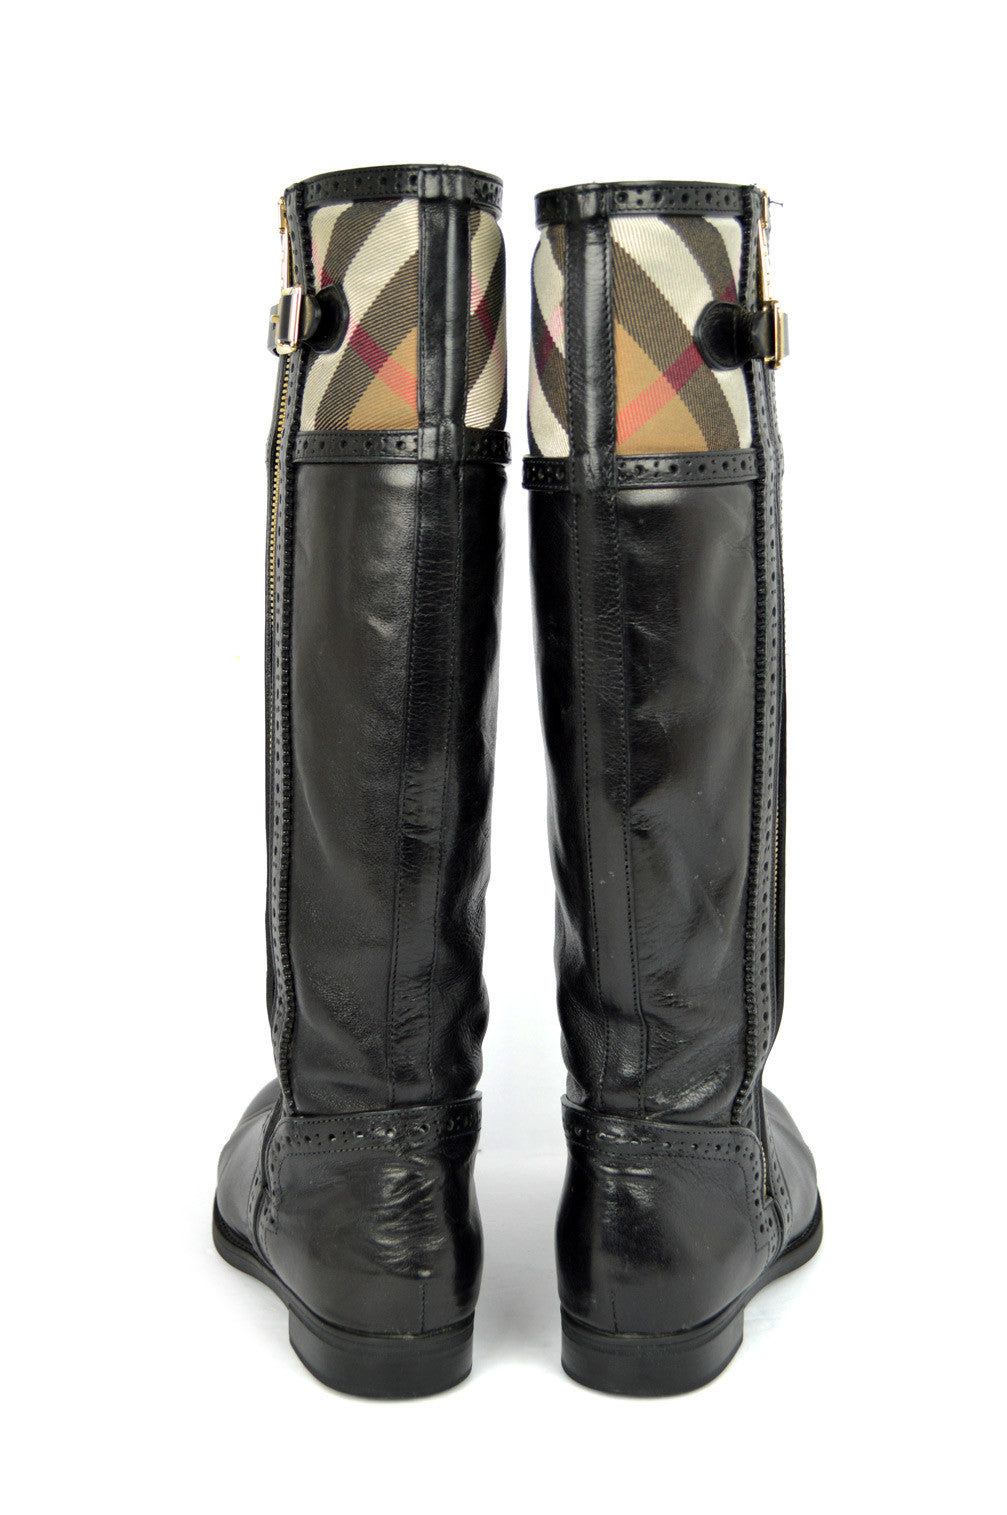 Haymarket-Check Black Leather Knee-High Boots